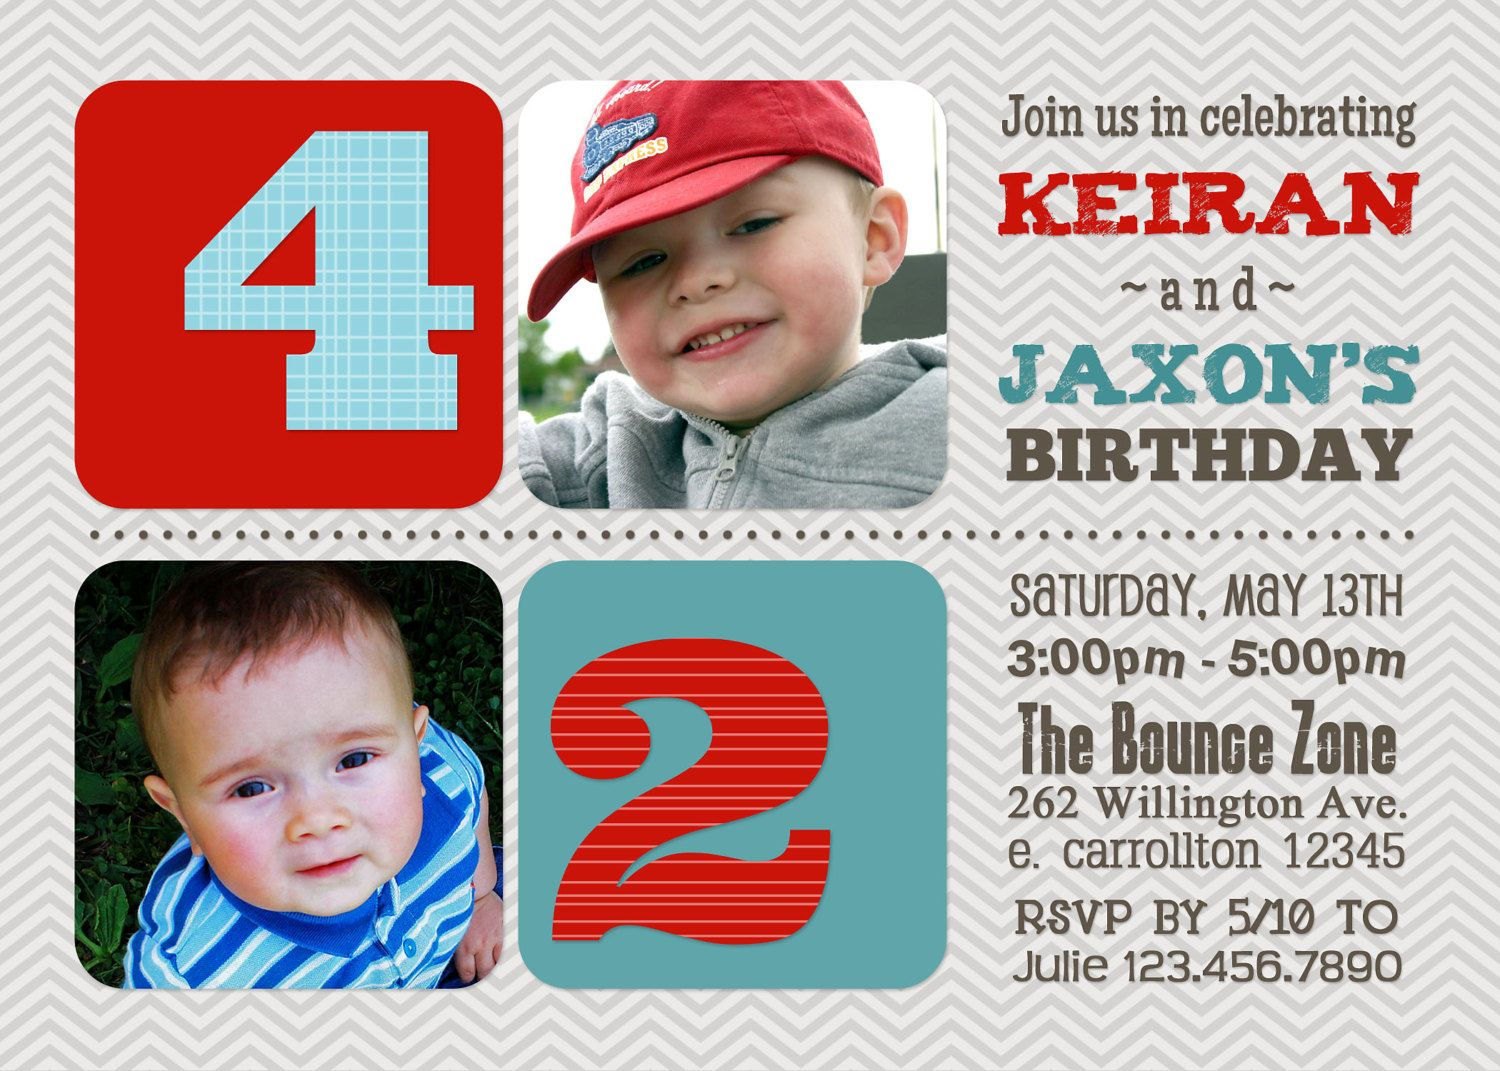 Sibling birthday invitation boy girl twin brother sister double joint twin photo birthday invitation boy girl or boy girl format 1800 via etsy if i ever have another ha stopboris Image collections